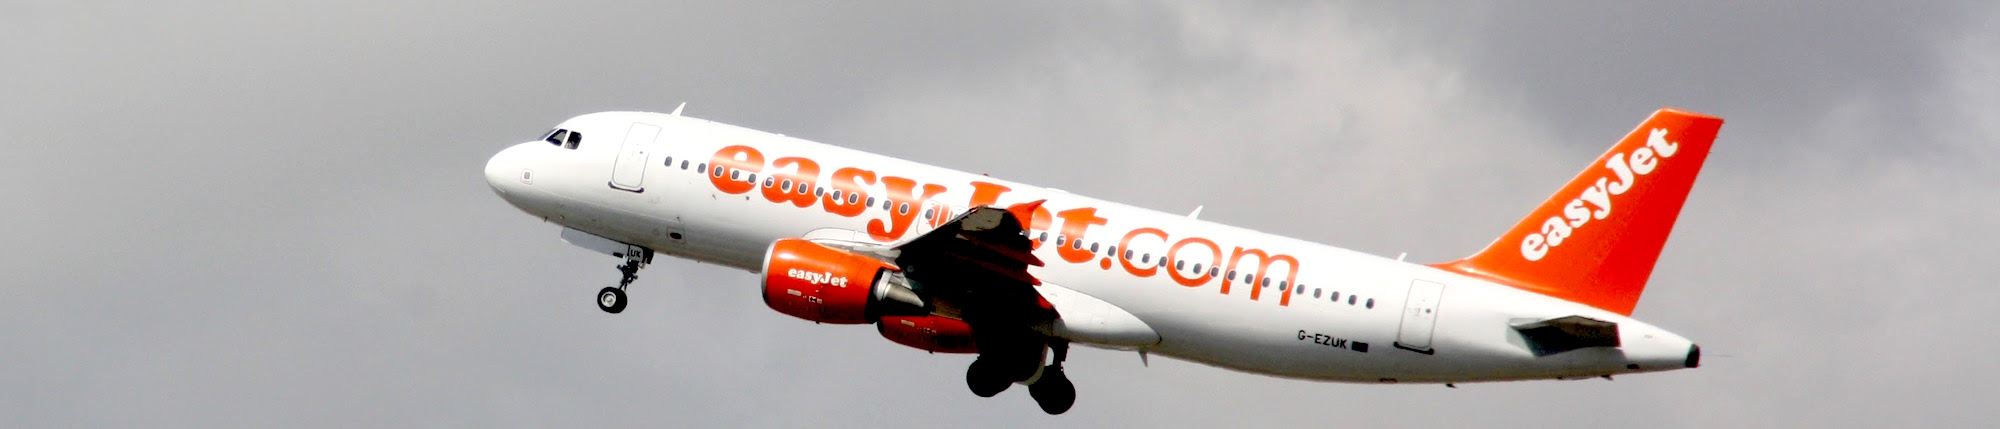 Best time to book flights for Edinburgh (EDI) to Paris (CDG) flights with EasyJet at AirHint